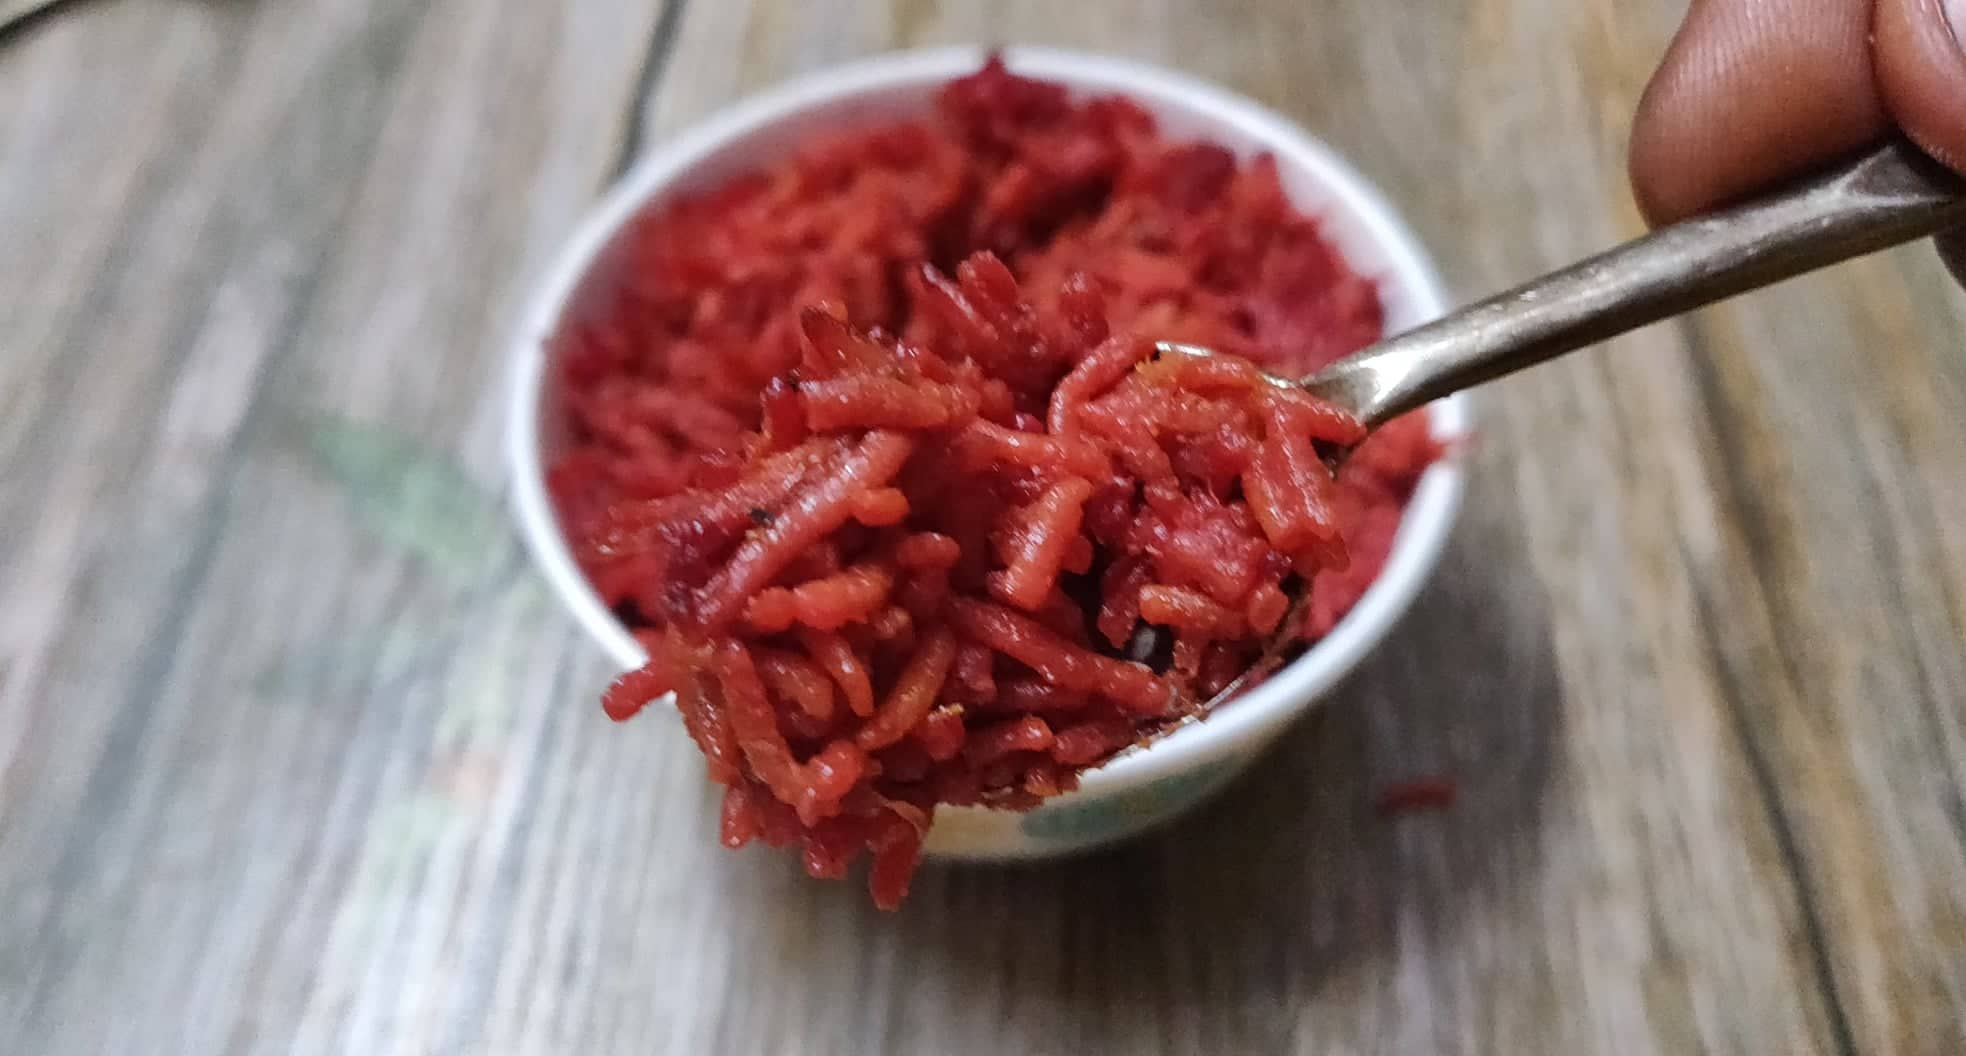 beetroot_rice - 82859621_870504716712760_8985718053119459328_n